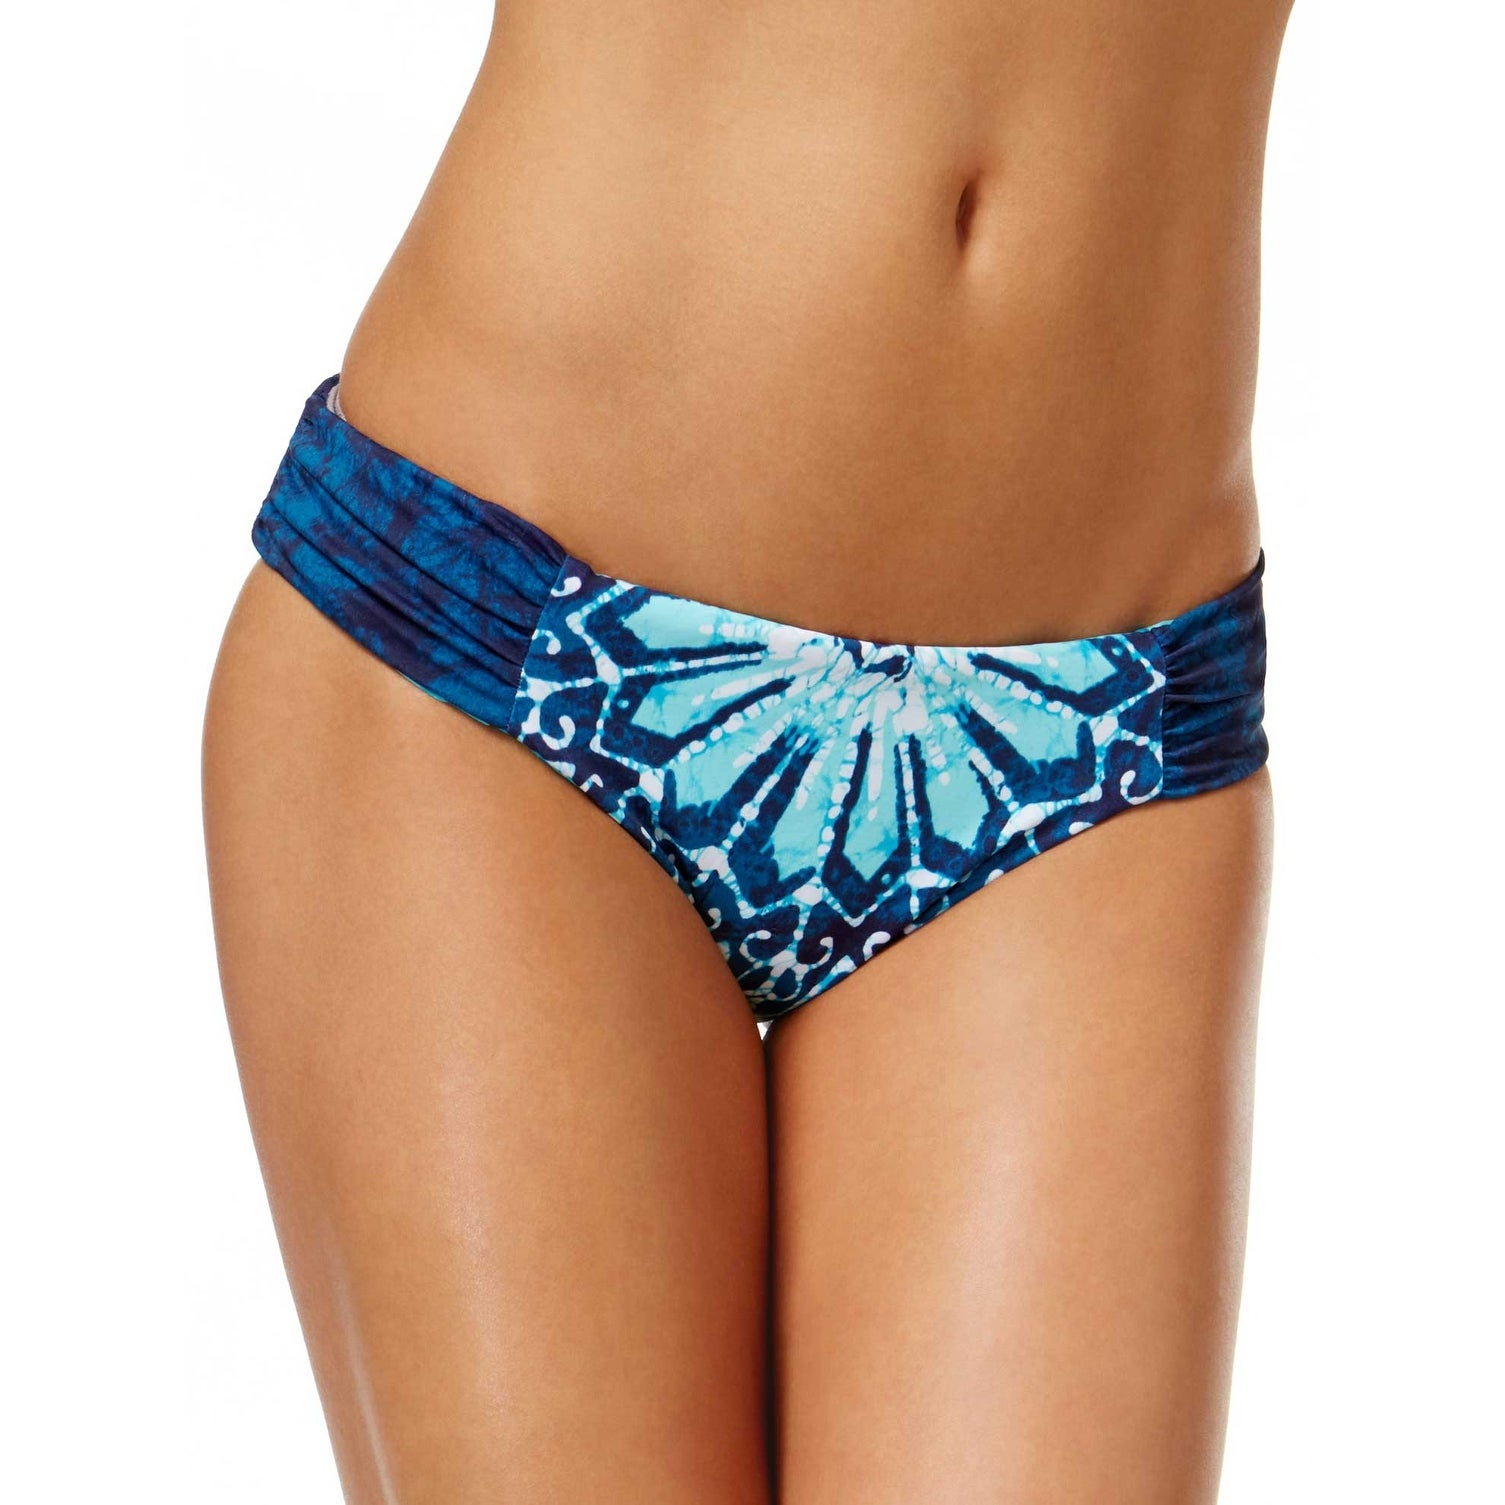 7595e47e6ad Shop Lucky Brand Womens Batik Chic Reversible Two Piece Swimsuit Small S  Blue - Free Shipping Today - Overstock - 20896920